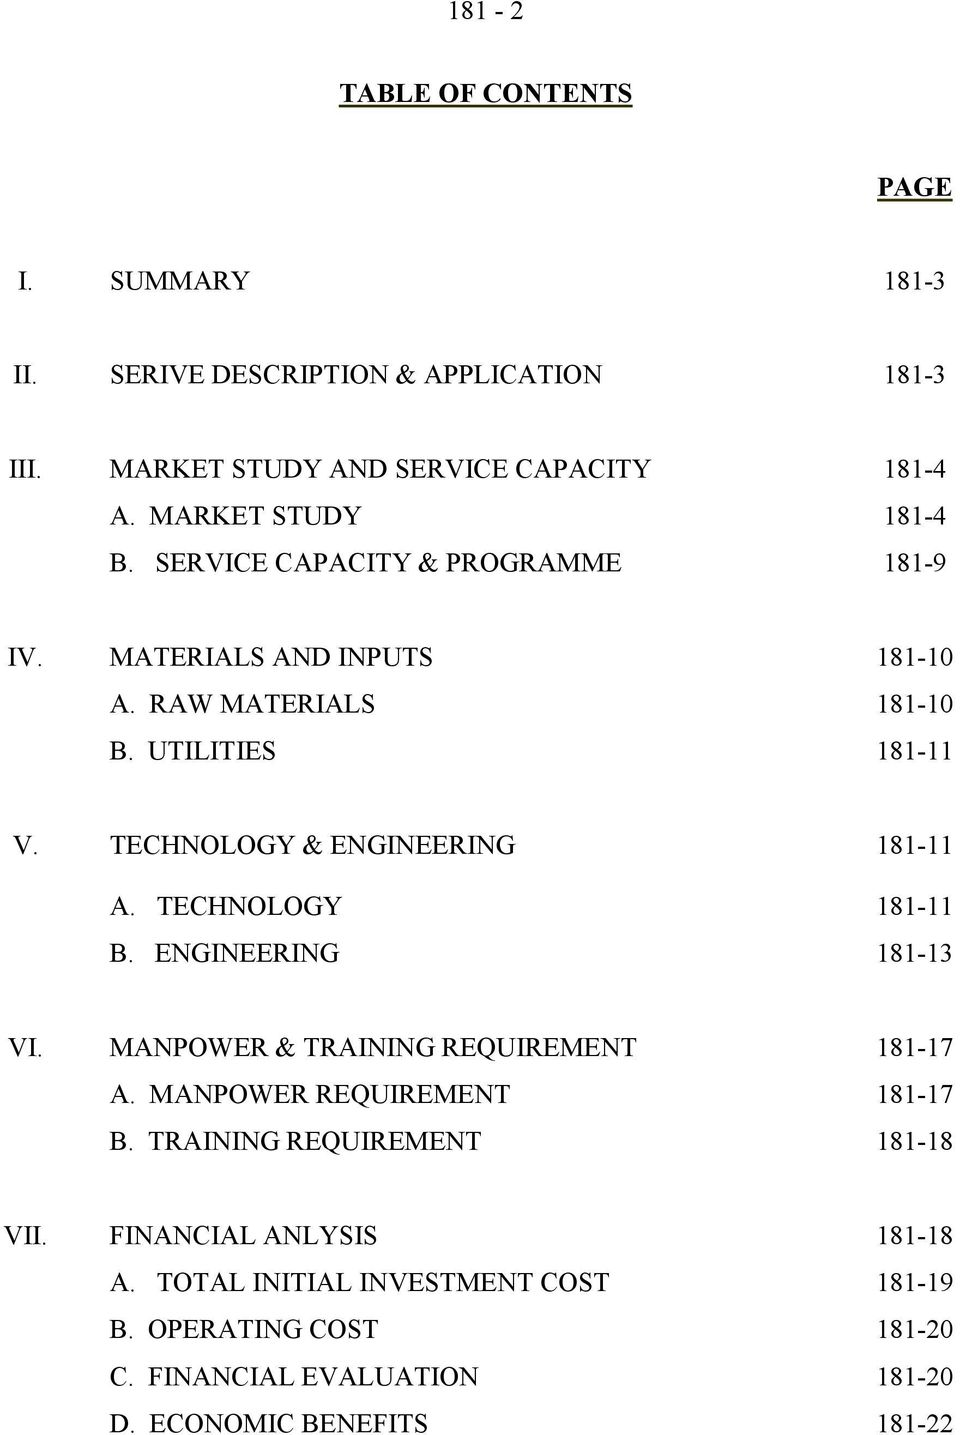 TECHNOLOGY & ENGINEERING 181-11 A. TECHNOLOGY 181-11 B. ENGINEERING 181-13 VI. MANPOWER & TRAINING REQUIREMENT 181-17 A. MANPOWER REQUIREMENT 181-17 B.